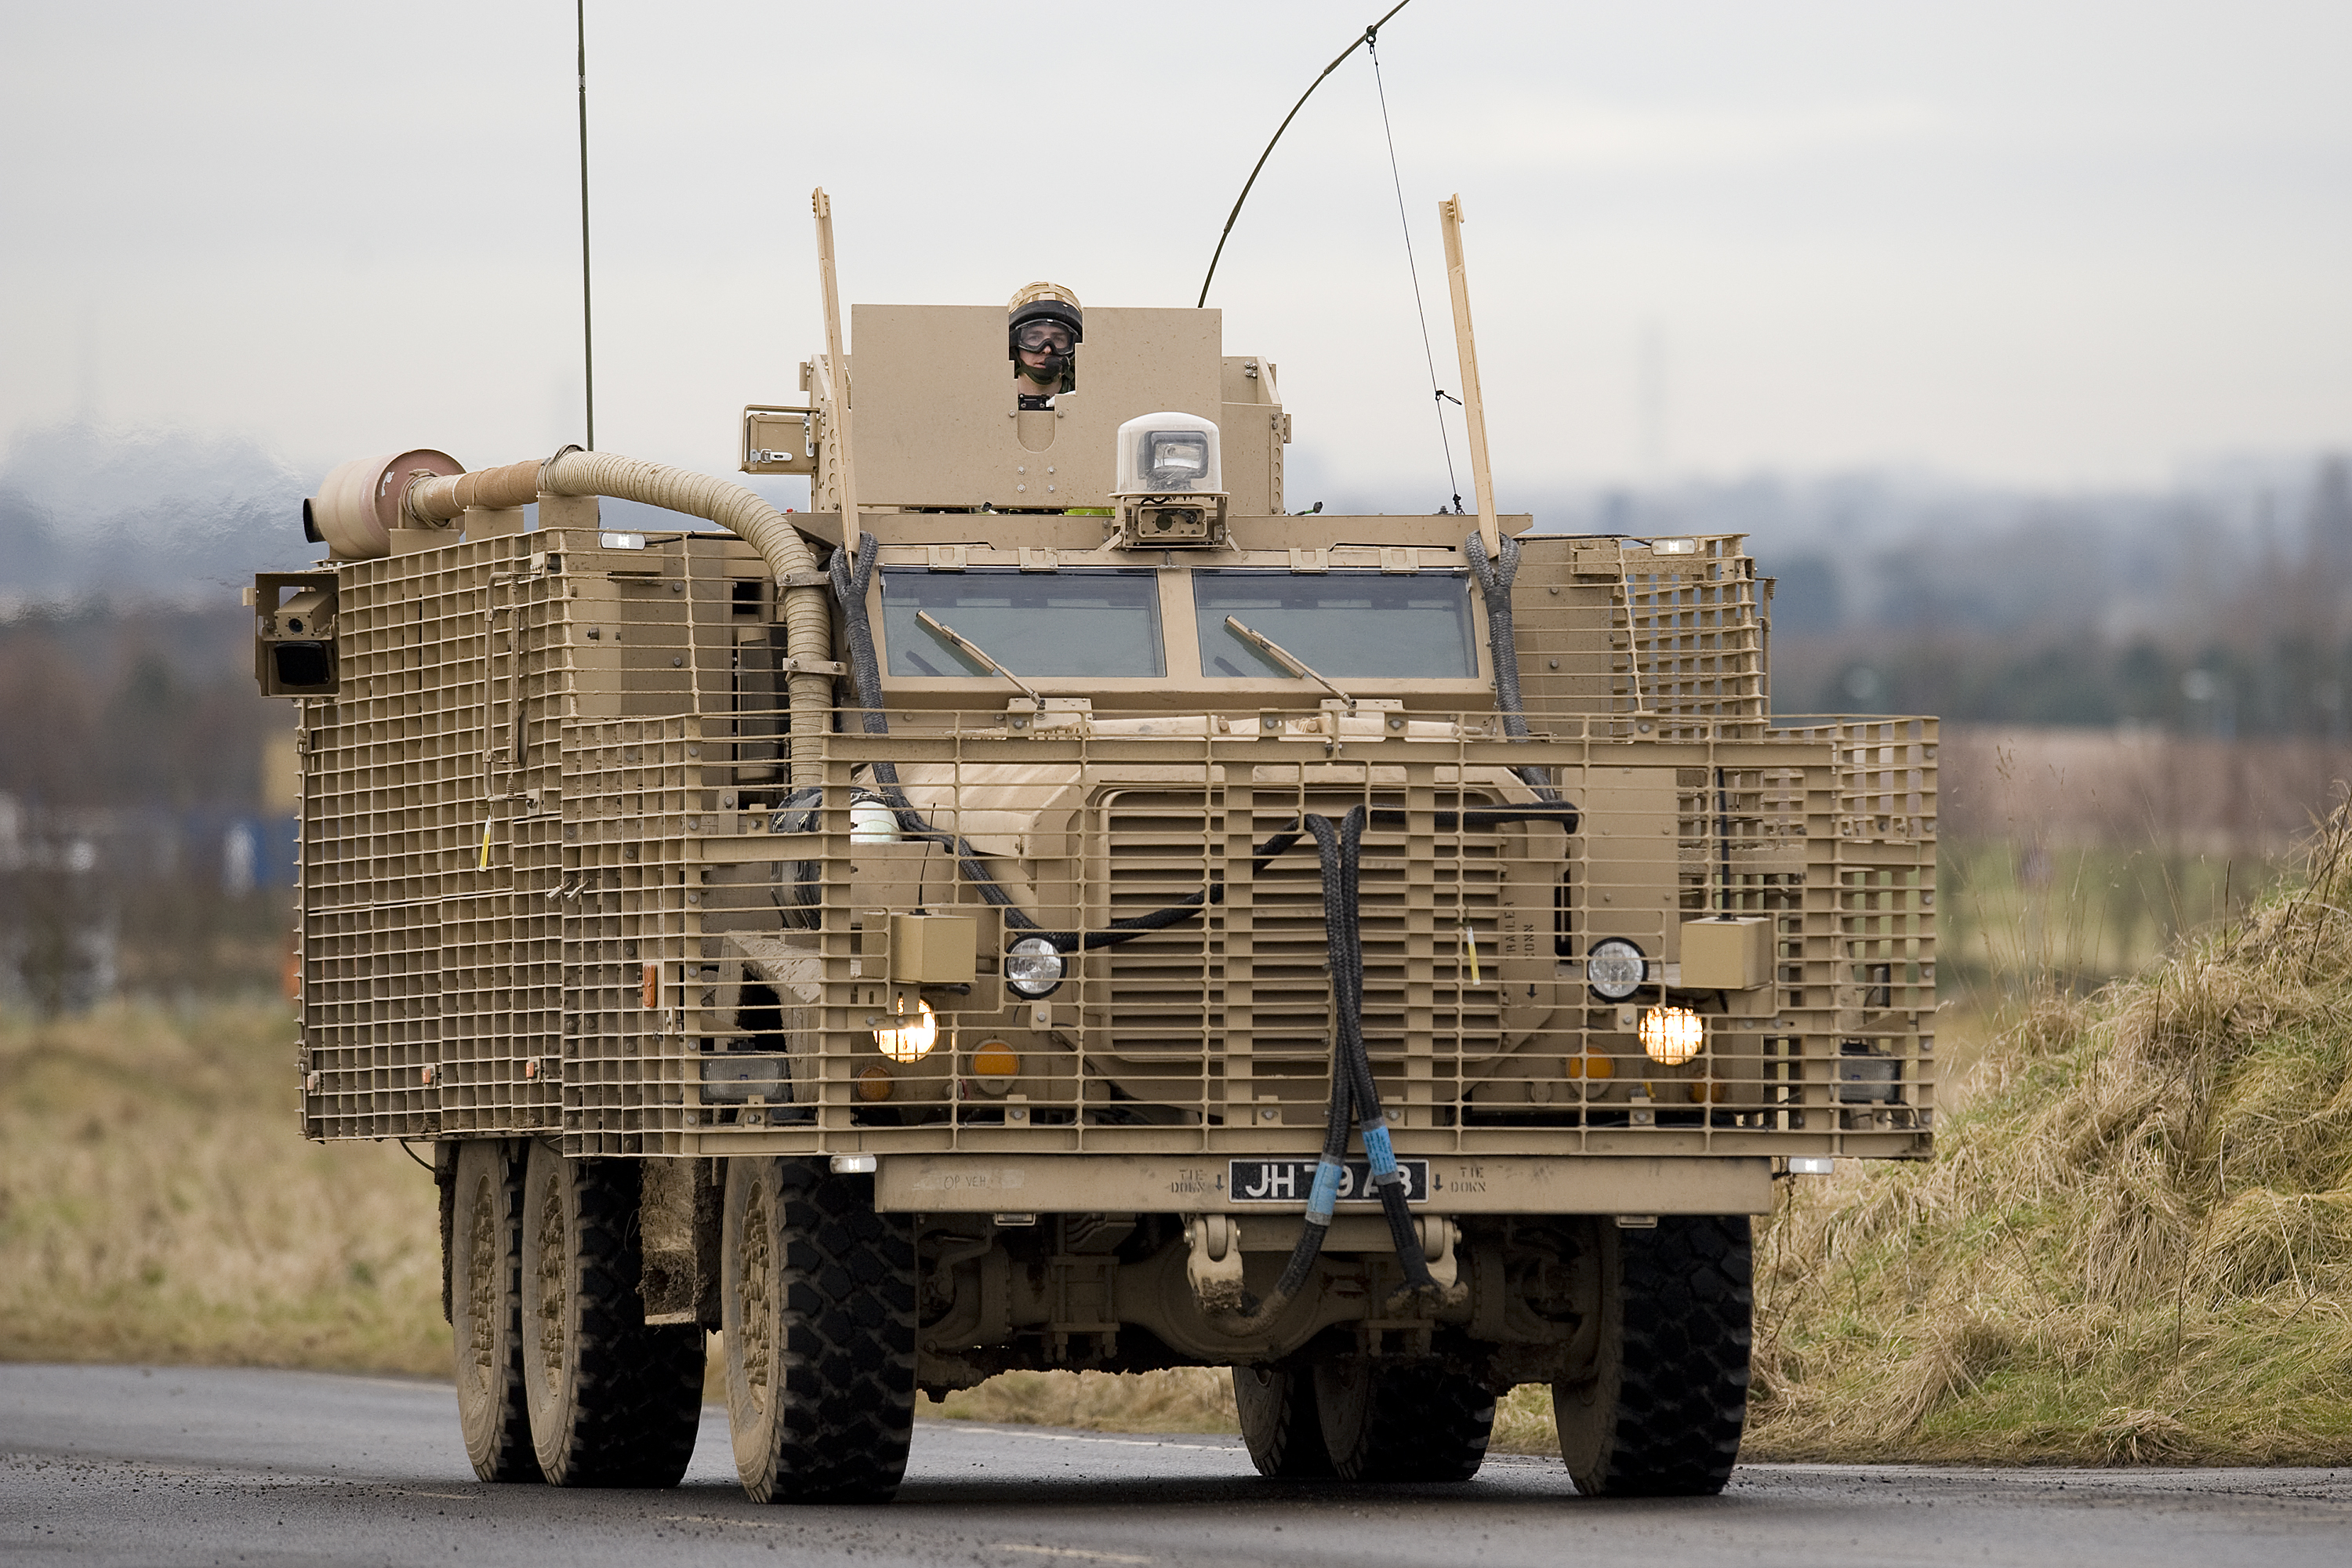 This British Mastiff MRAP is designed to protect soldiers from IED blasts. Note the truck chassis, a common feature of MRAPs.